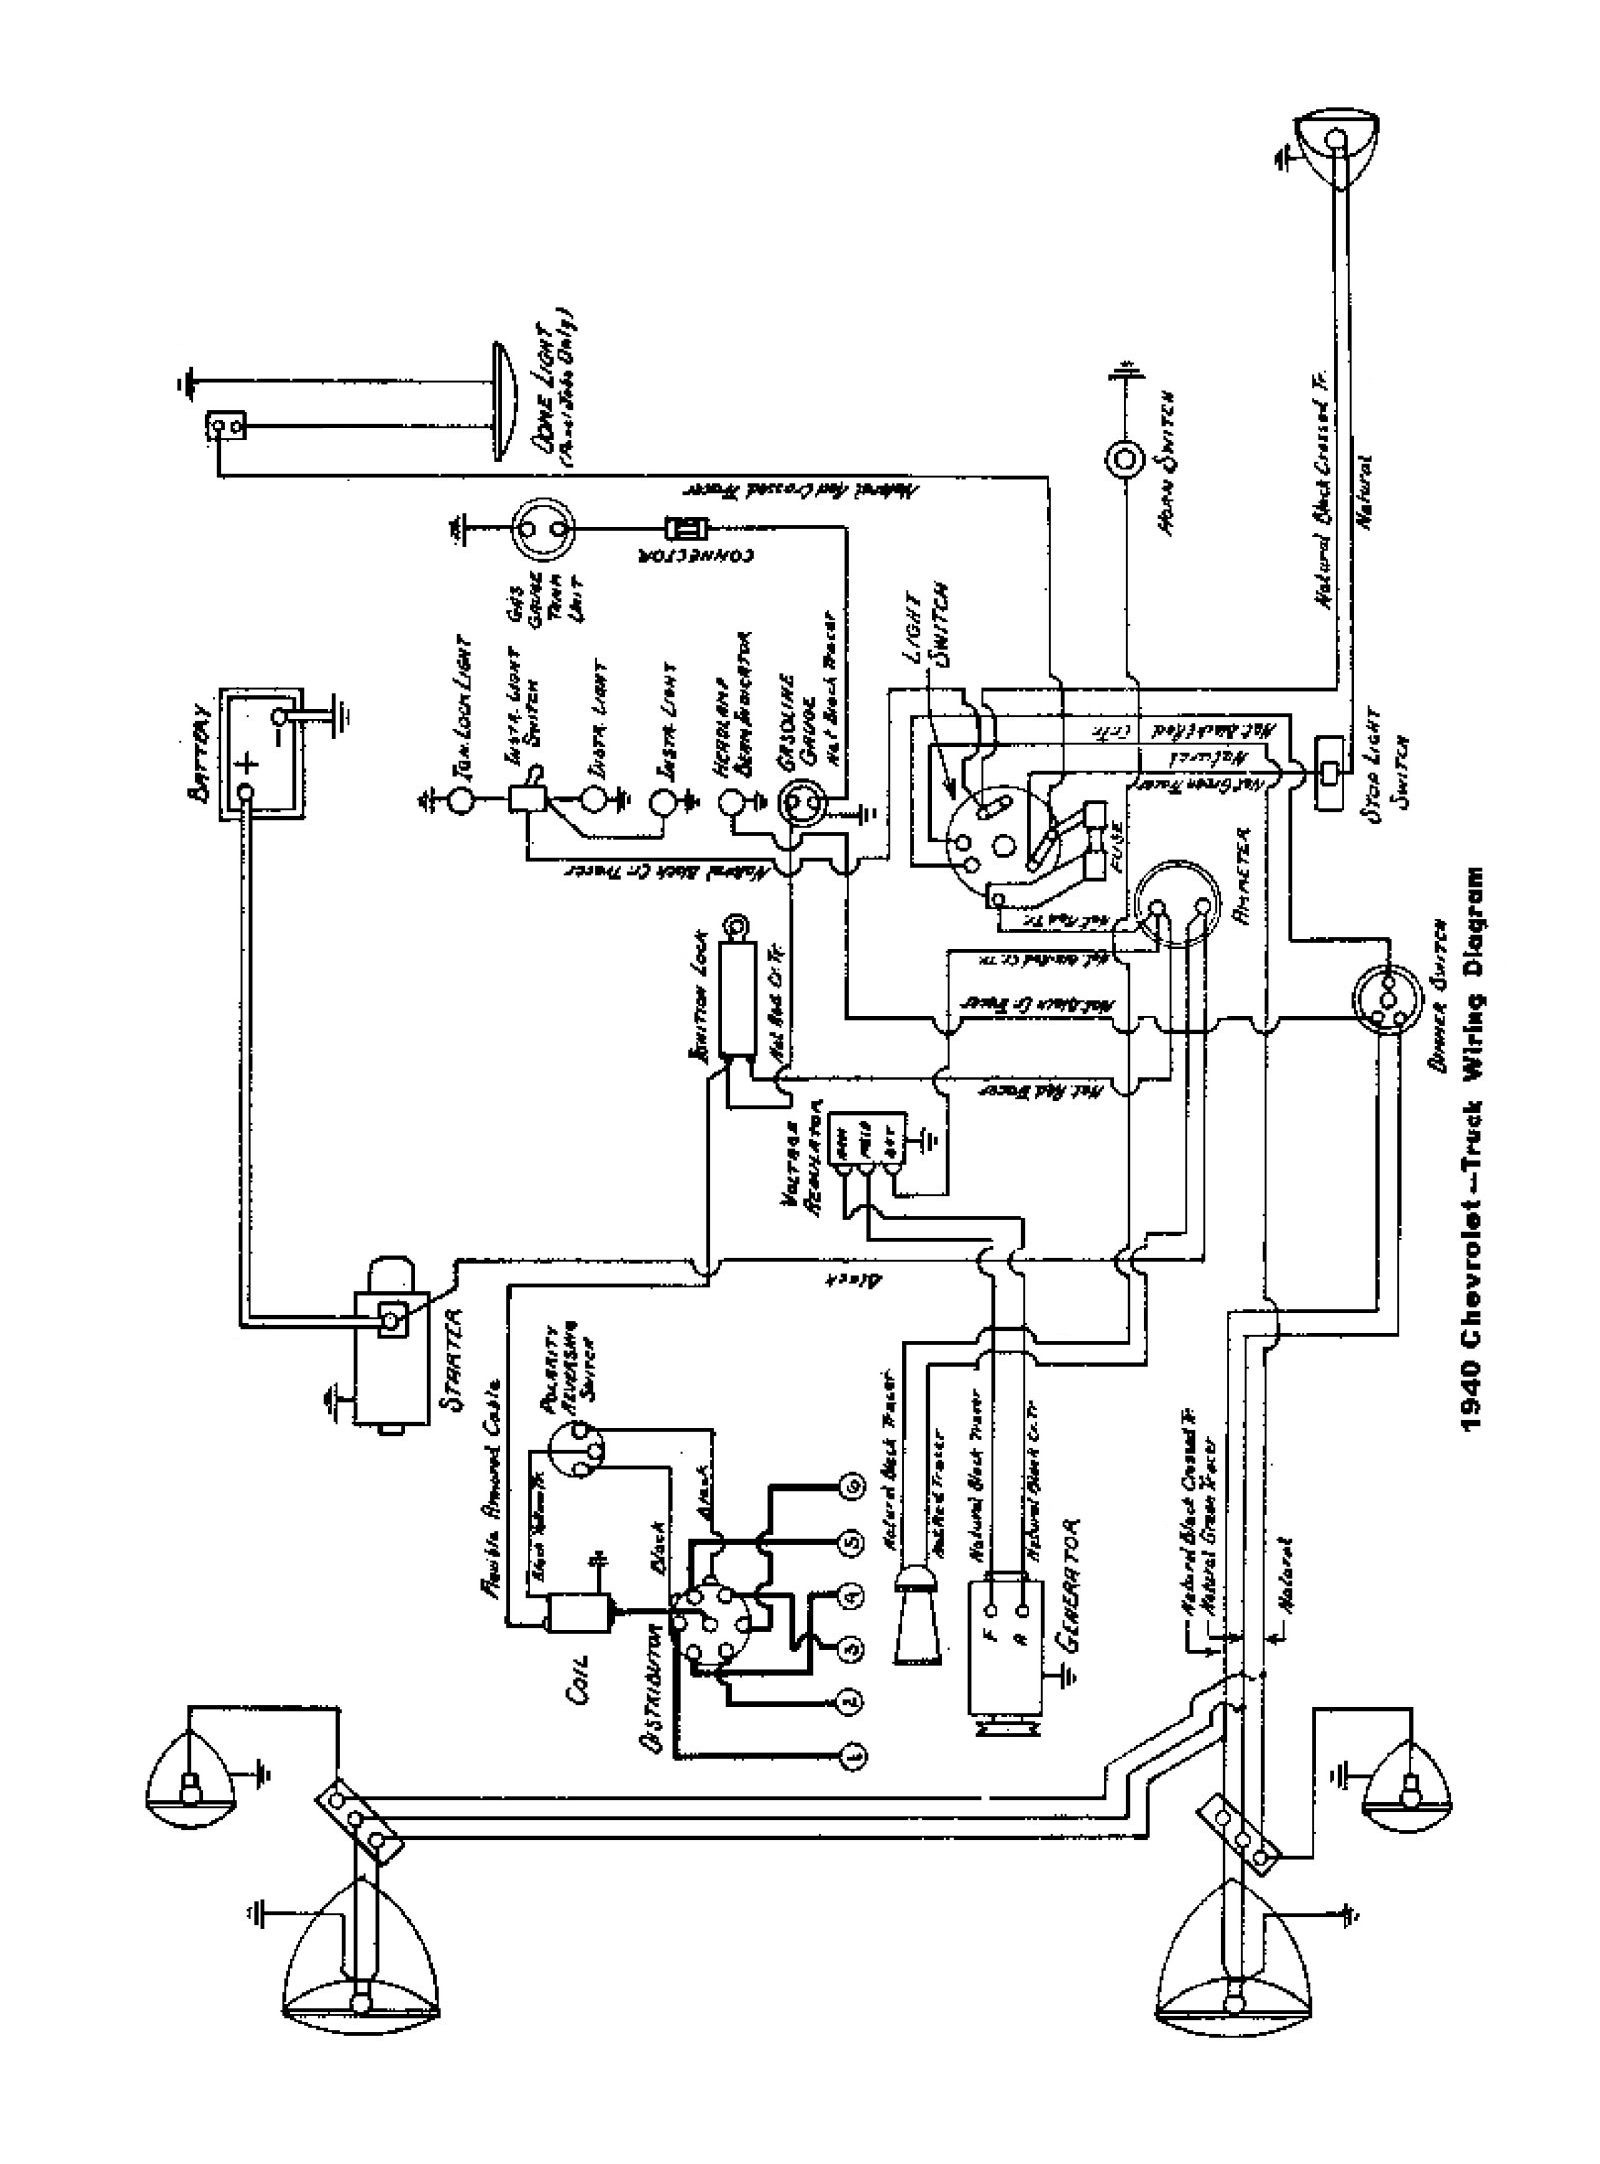 1951 Chevrolet Wiring Diagram - Wiring Diagram News •